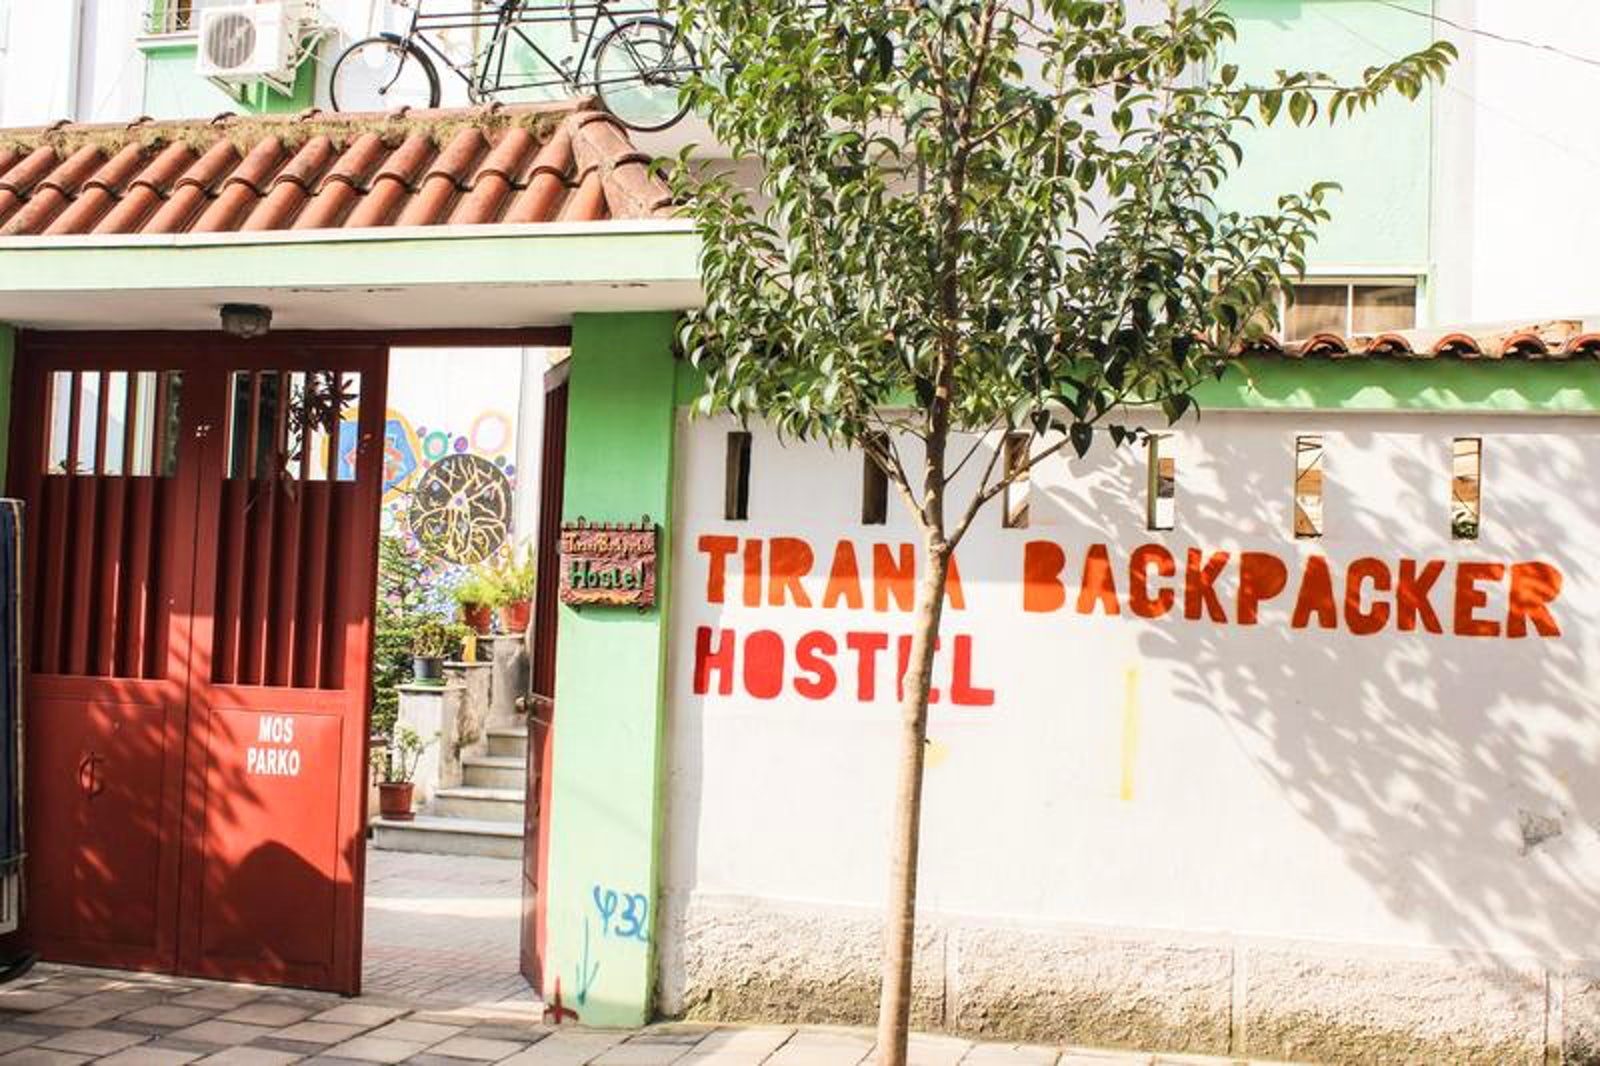 Cover picture © Credits to Tirana Backpacker hostel